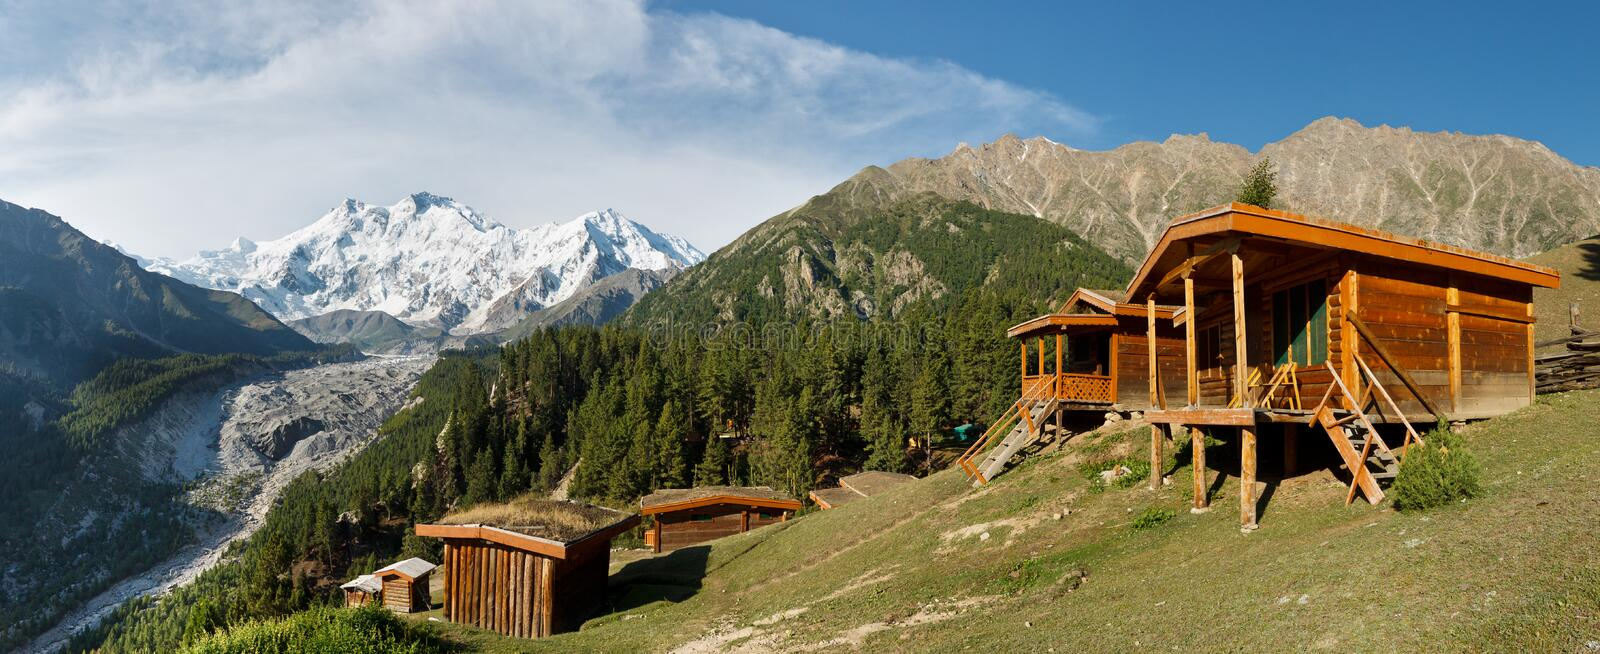 Nanga Parbat and Fairy Meadows Panorama. The world's ninth highest peak seen from the idyllic Fairy Meadows, Pakistan royalty free stock images